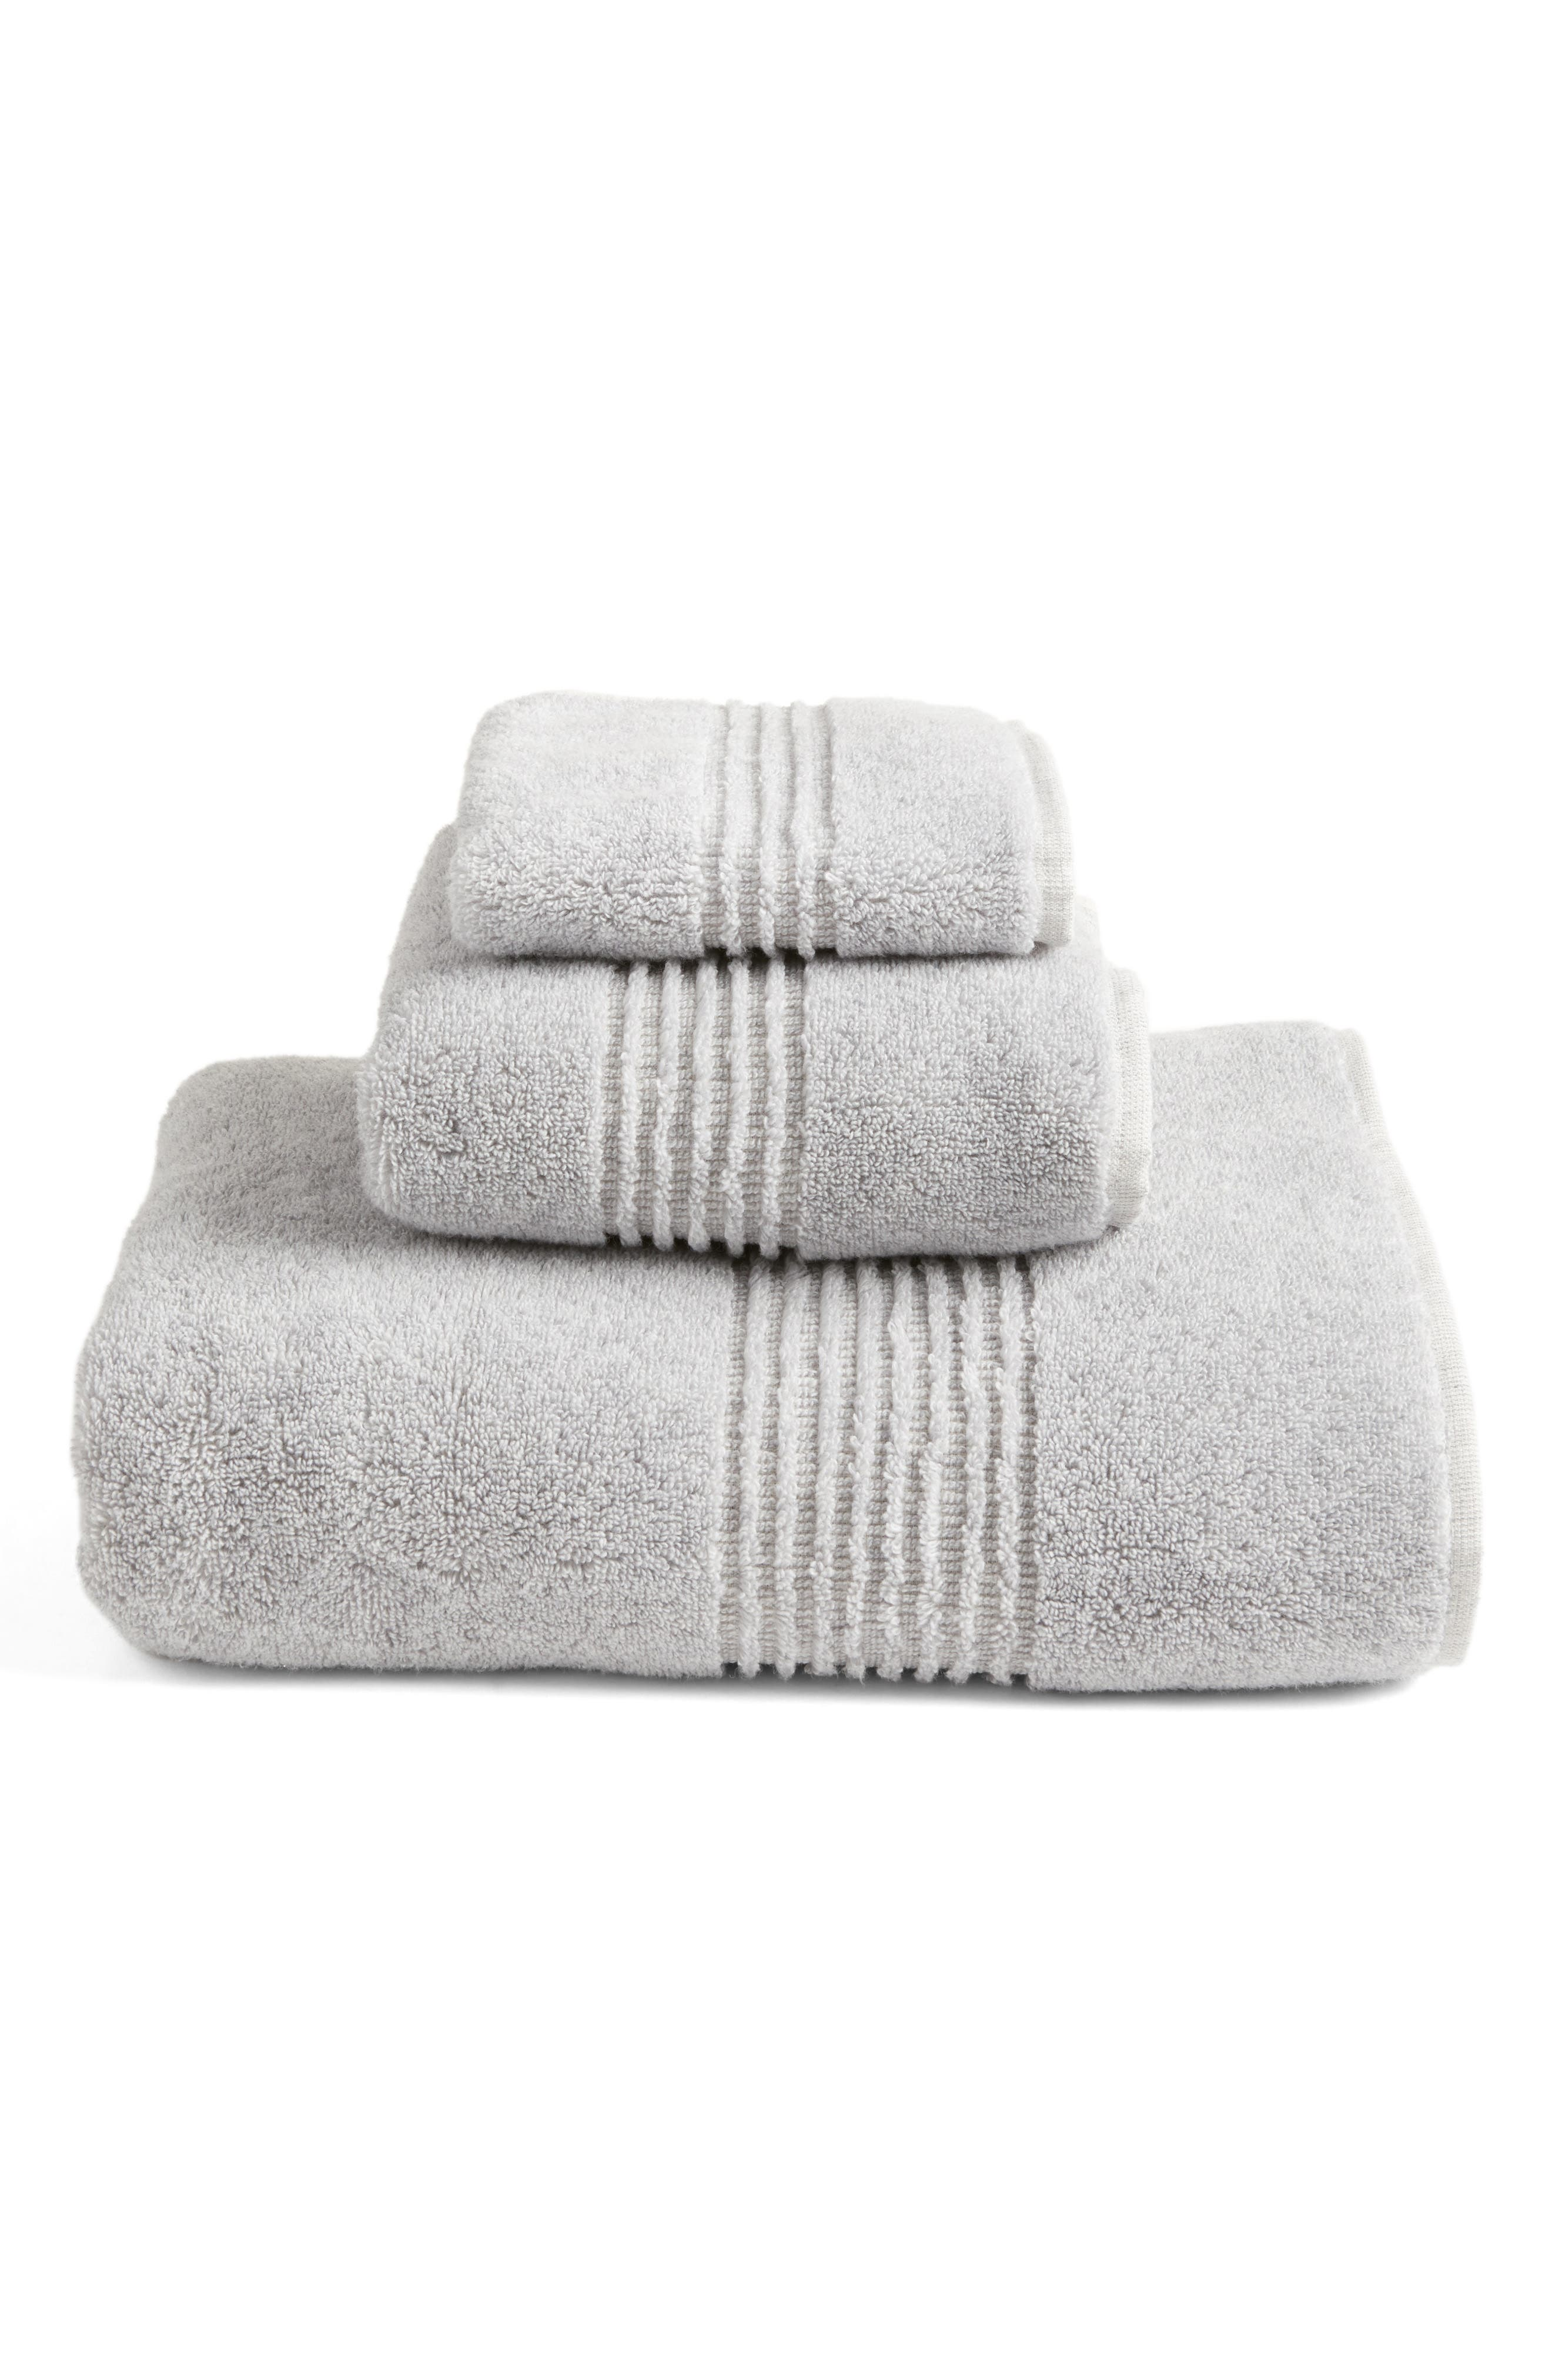 Organic Hydrocotton Hand Towel,                             Main thumbnail 1, color,                             GREY SOFT